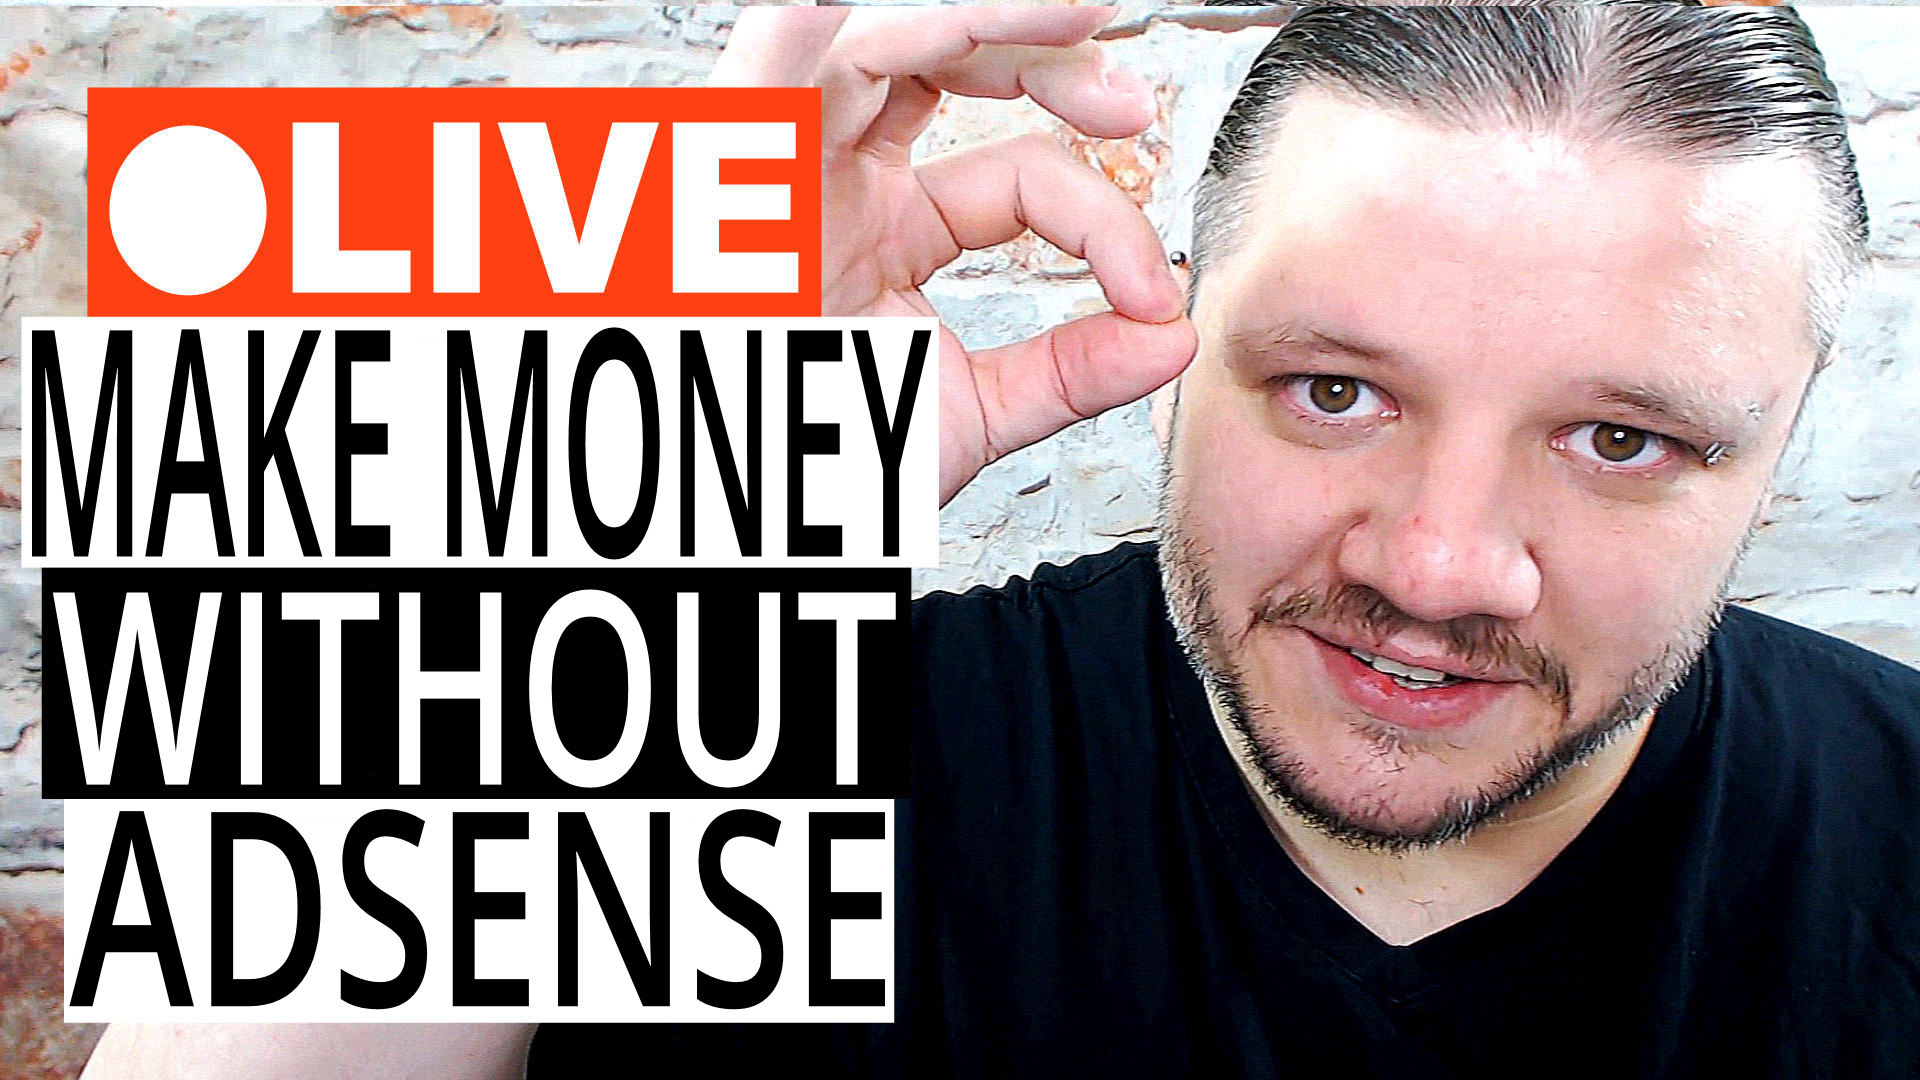 How To Make Money Without Adsense,Make Money Without Adsense,youtube partner program,make money without partner program,make money without youtube adverts,make money on youtube,make money online,passive income,passive income online,passive income youtube,make money youtube,youtube money,youtube monetization,monetization,affiliate marketing,amazon affiliate marketing,how to monetize youtube,monetize youtube,ypp,youtube passive income,money,partner program